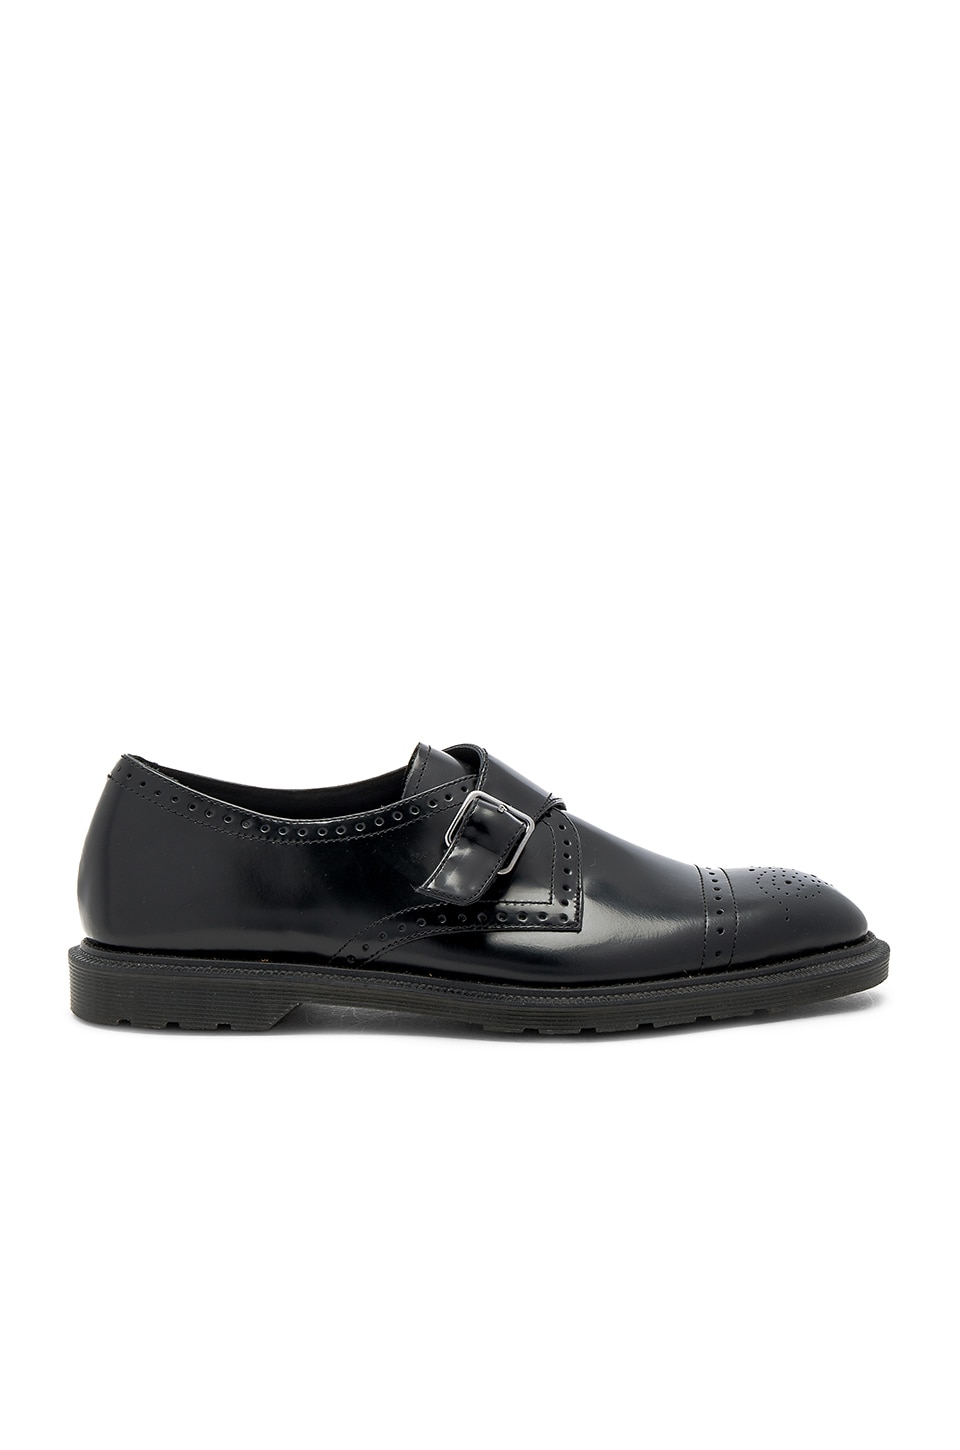 Cobden Monk Strap by Dr. Martens